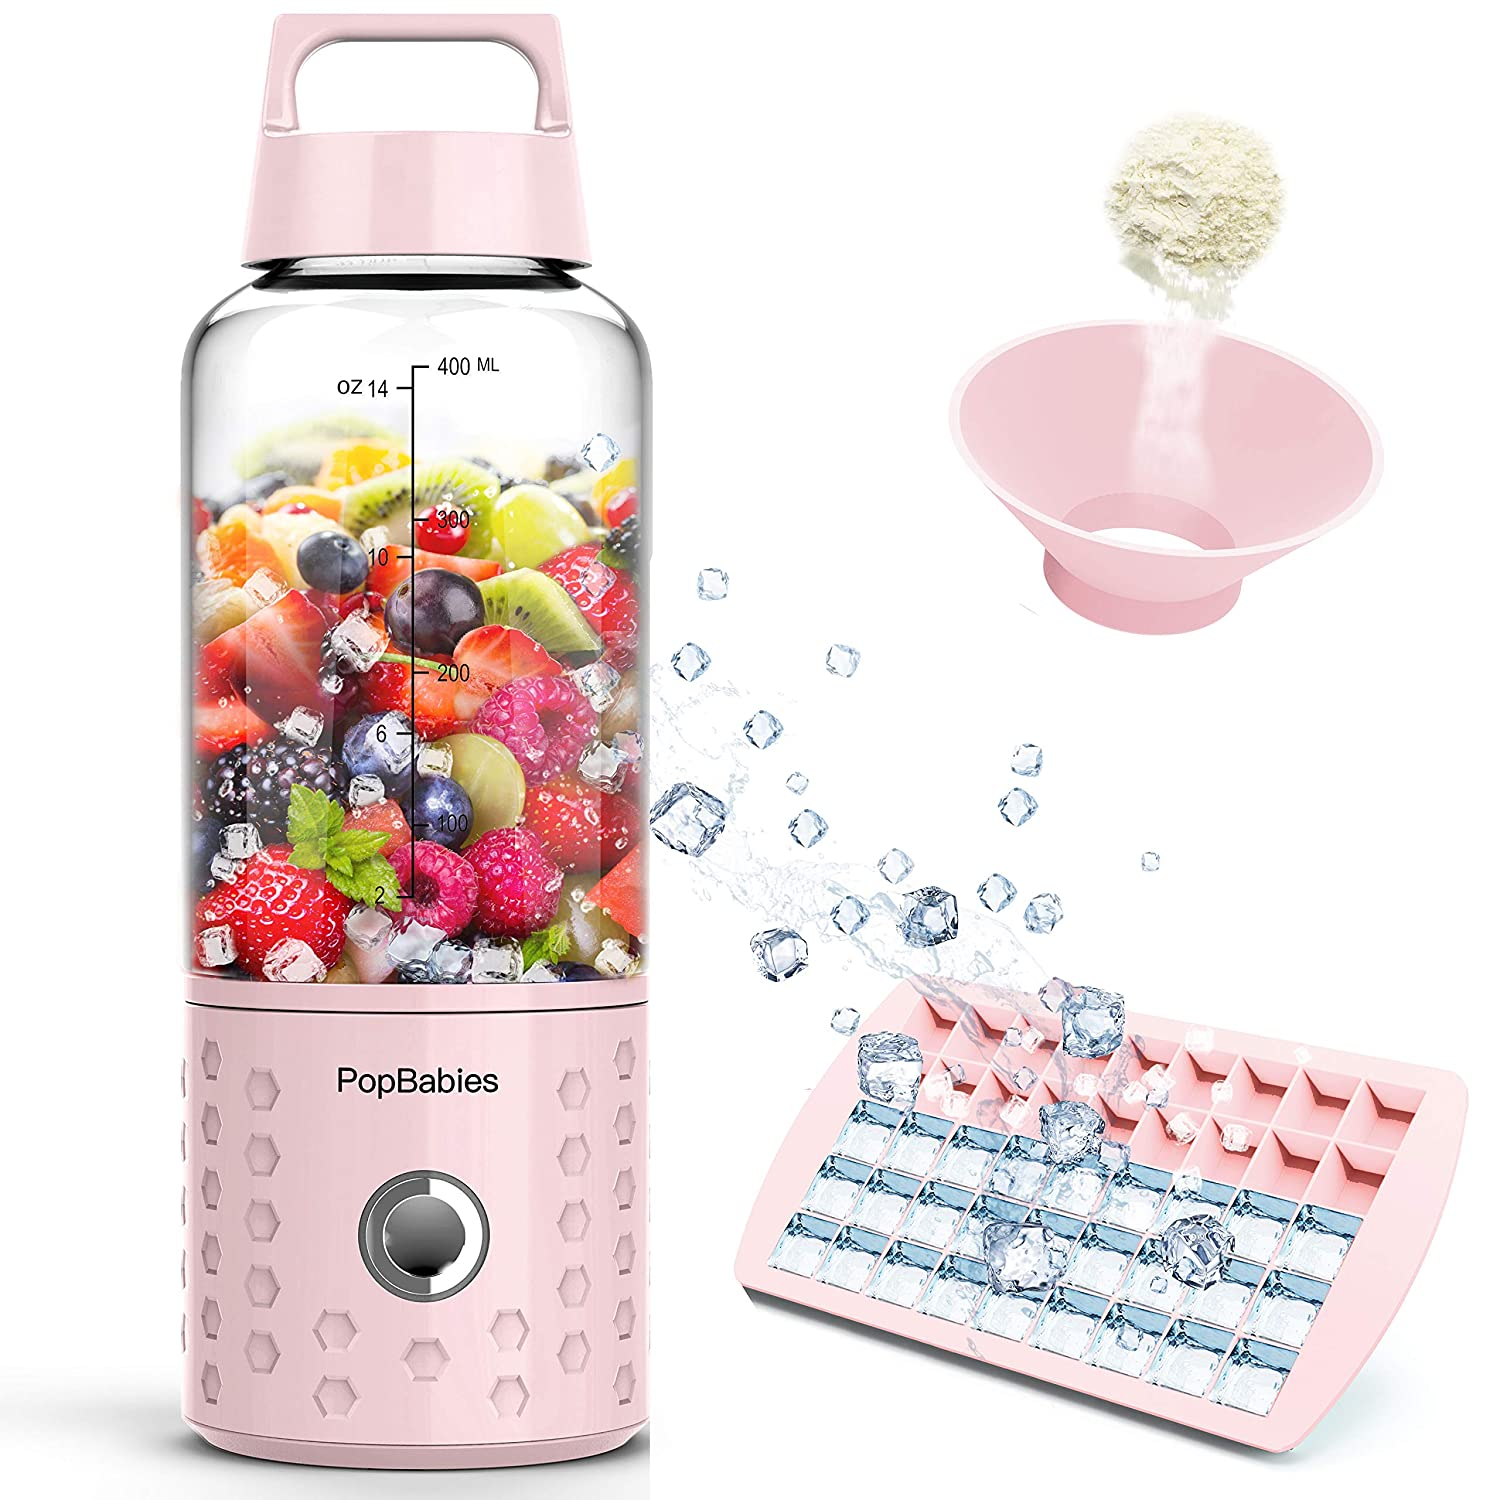 PopBabies Portable Blender, Mini Smoothie Maker with with USB Rechargeable, Larger Stronger and Faster, Blending While Charging with Brush, Funnel, Recipe Princess Pink(FDA BPA Free)